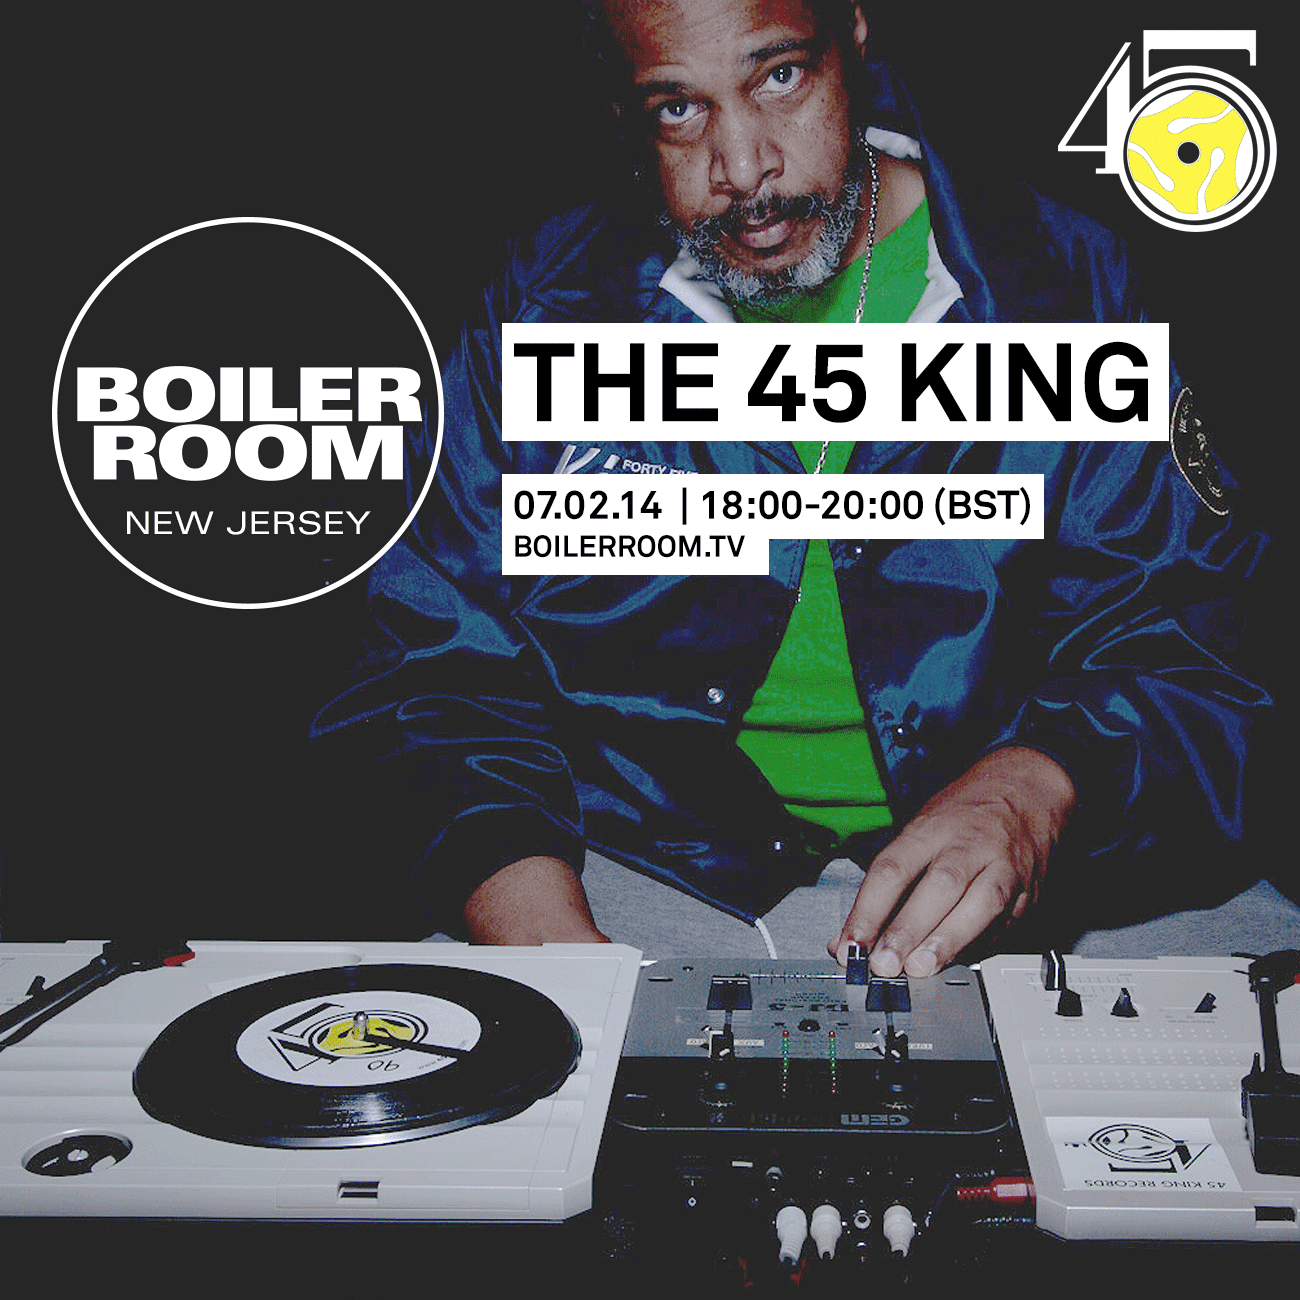 BOILER_ROOM_45KING_FLYER